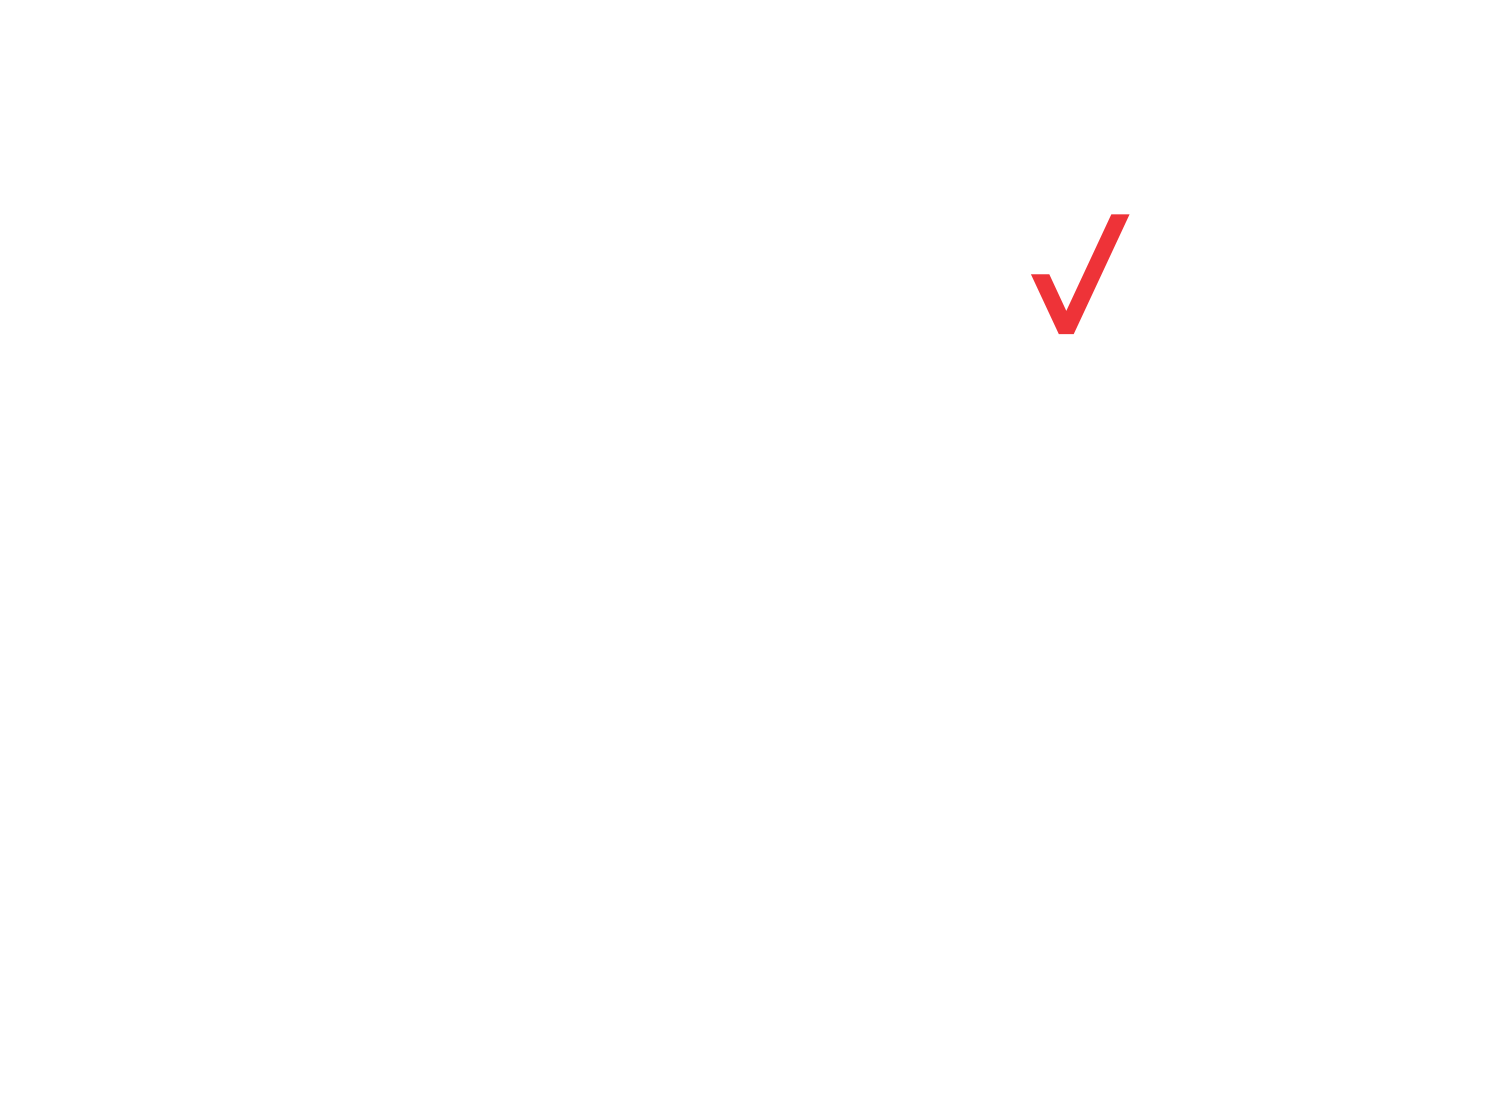 Verizon-Innovative-Learning-White-and-Red.png